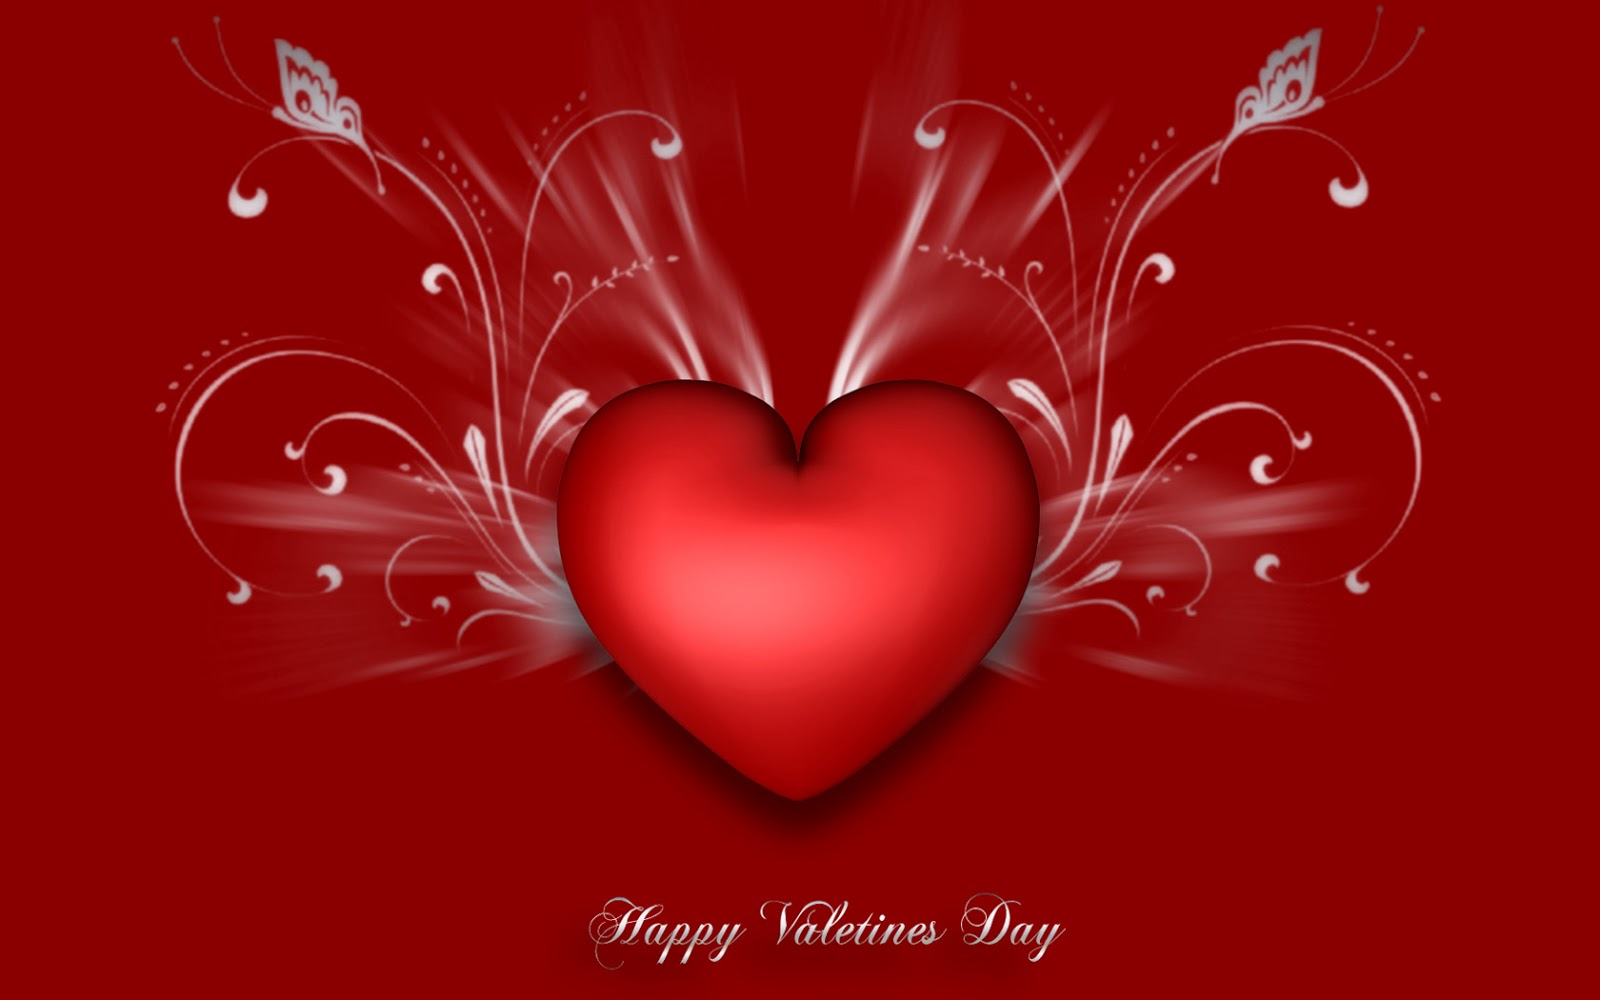 valentines day movie valentine day gifts for him valentine day quotes valentine day lyrics watch valentine day online valentine day origin